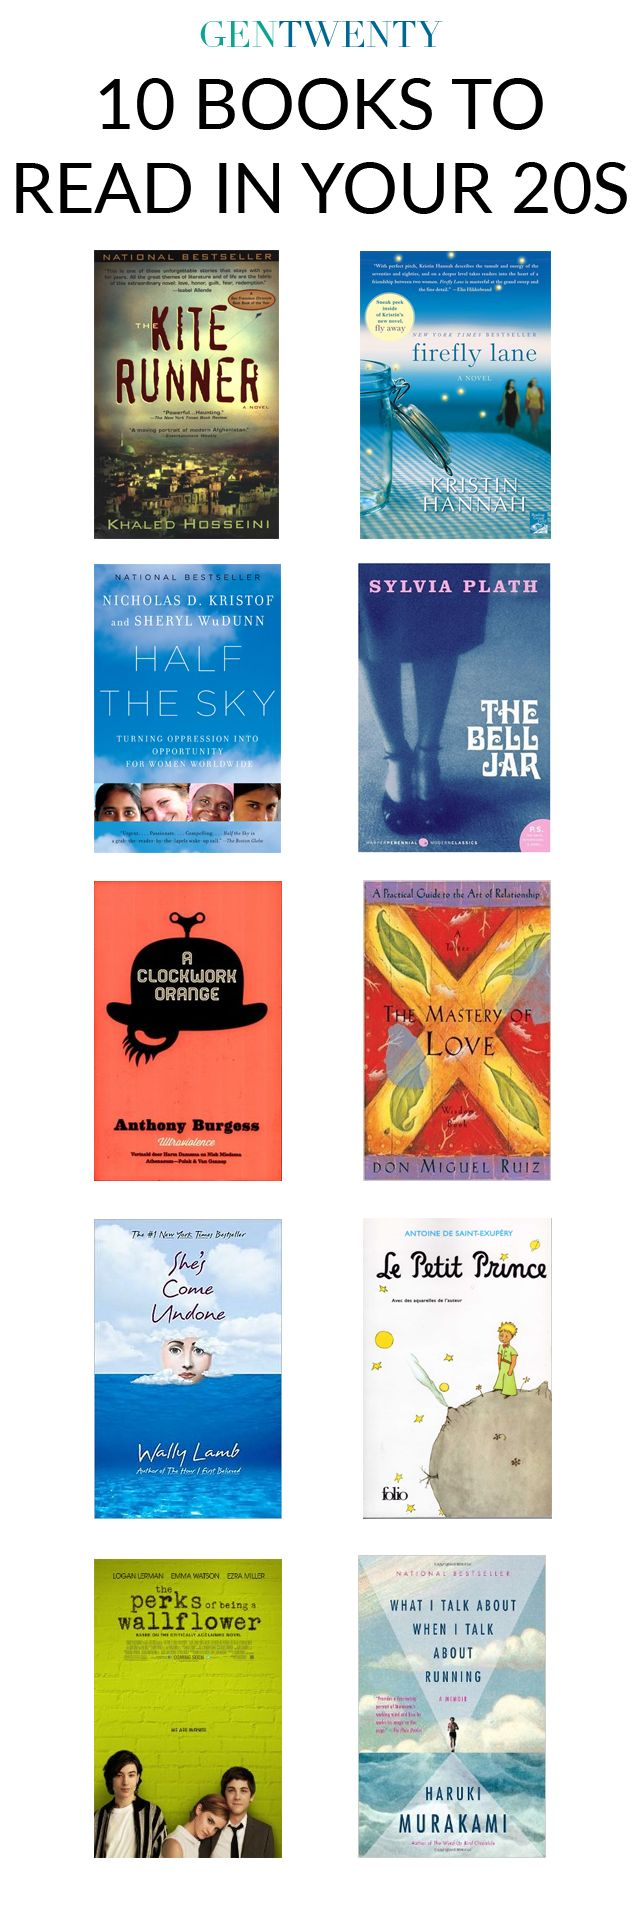 10 Books to Read in Your 20s List